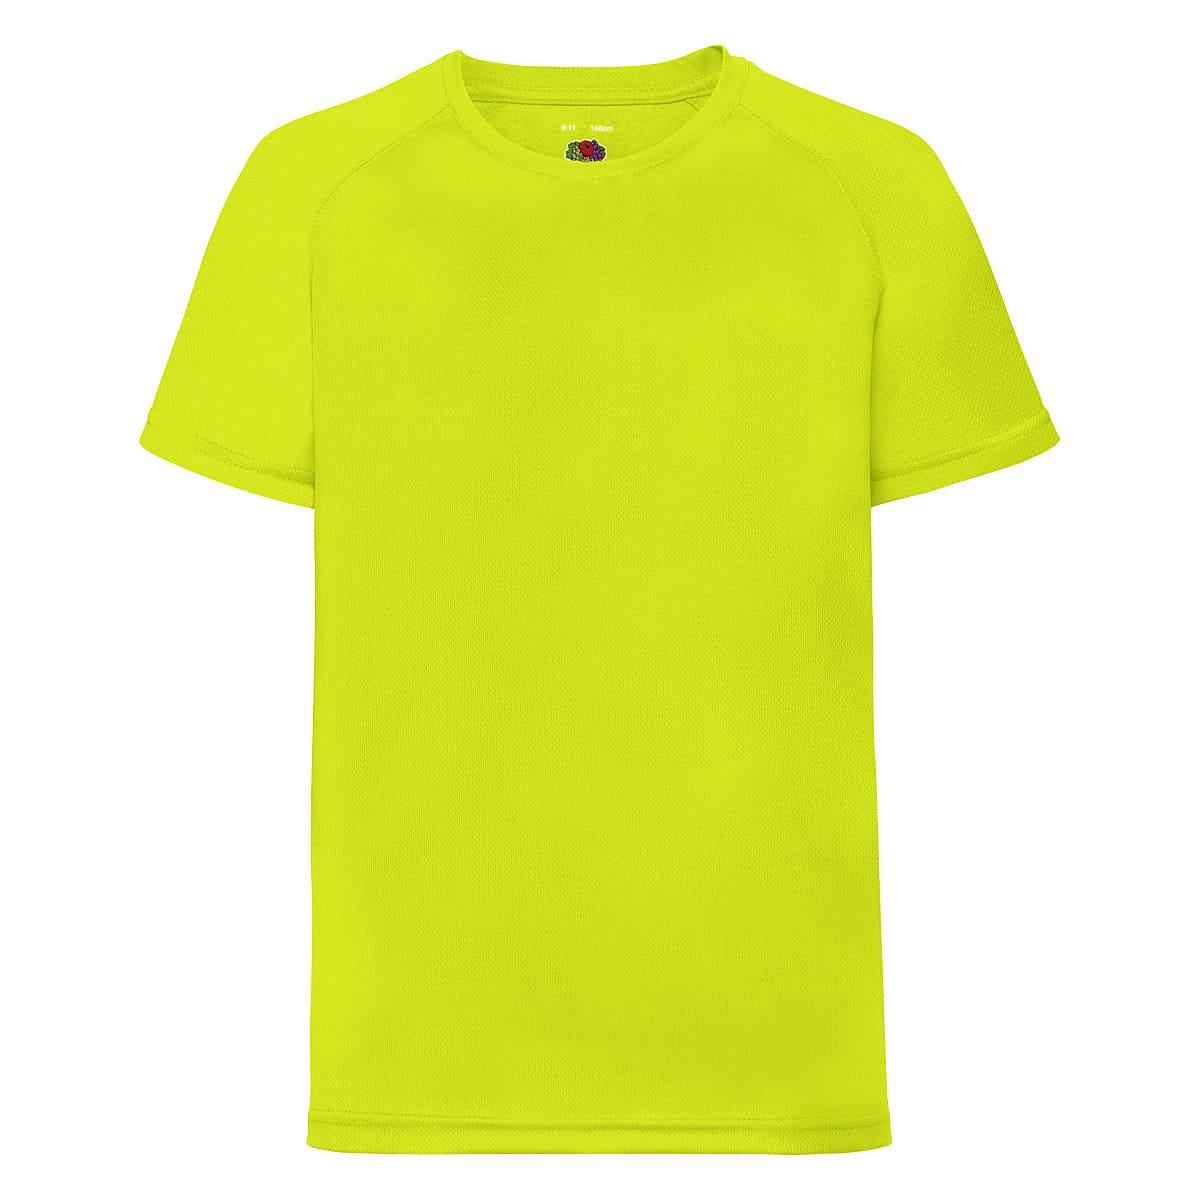 Fruit Of The Loom Childrens Kids Performance T-Shirt in Bright Yellow (Product Code: 61013)